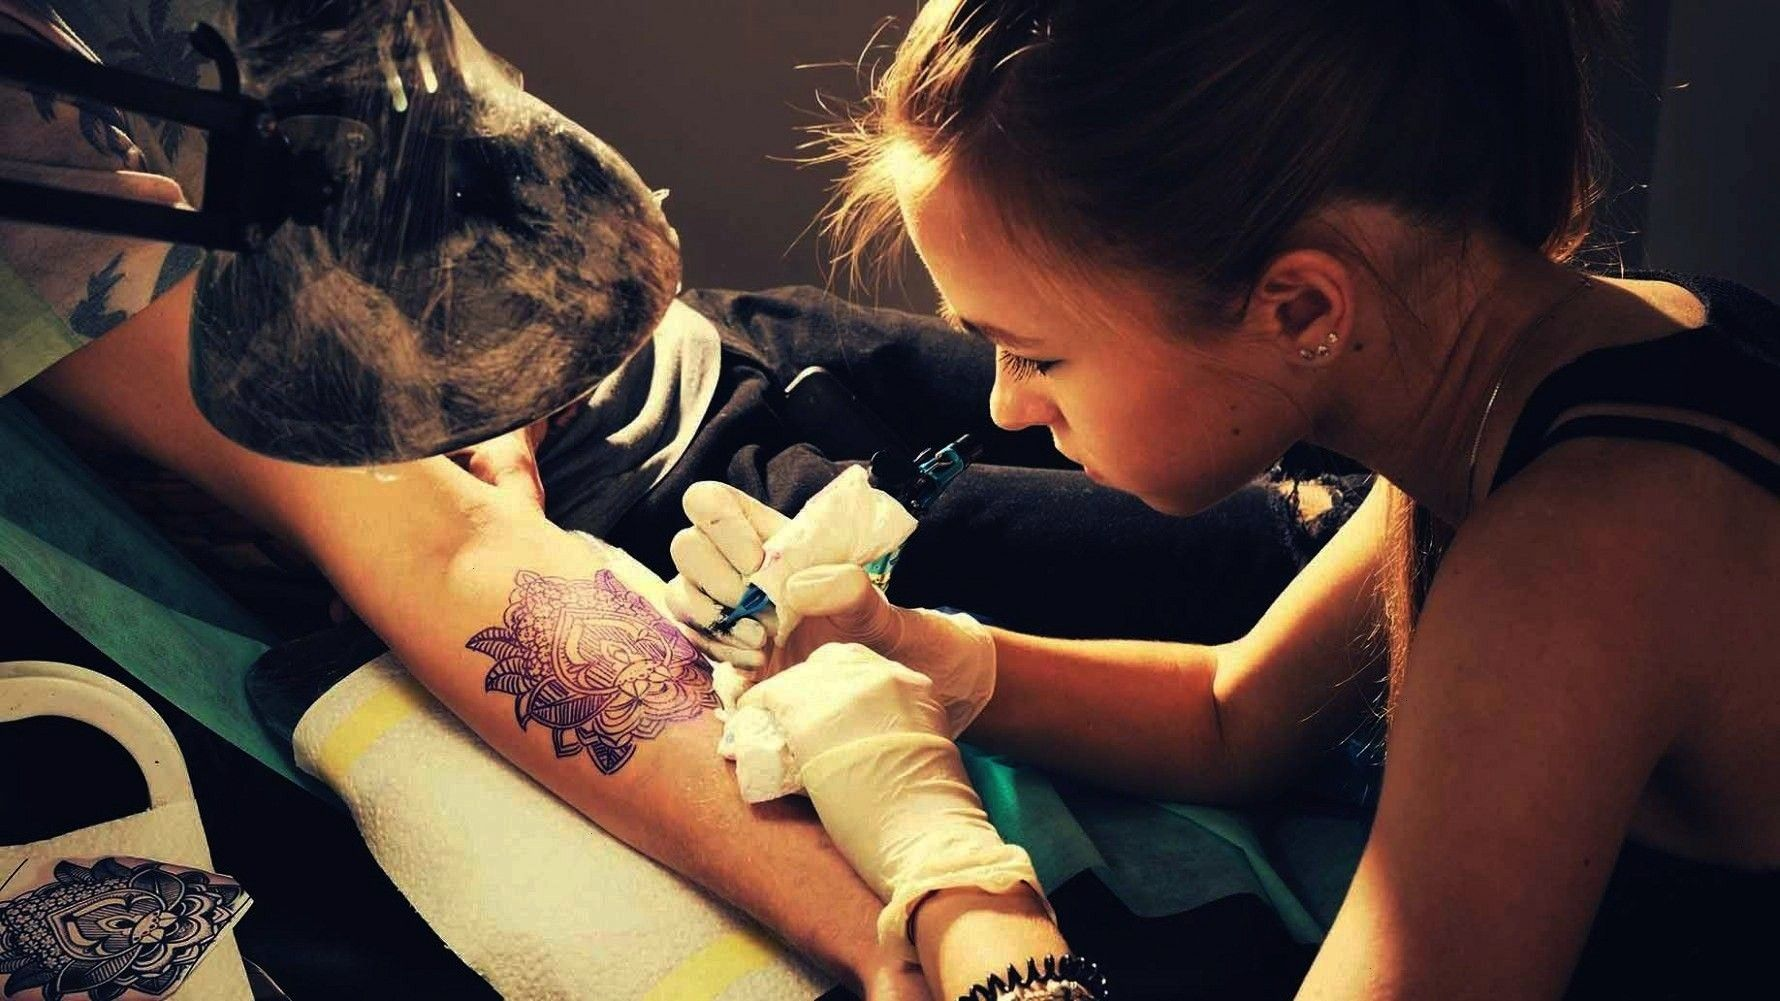 Much Does A Small Tattoo Cost Can Improve Your Business 16 Ways How Much Does A Small Tattoo Cost Can Improve Your Business 16 Ways How Much Does A Small Tattoo Cost Can...